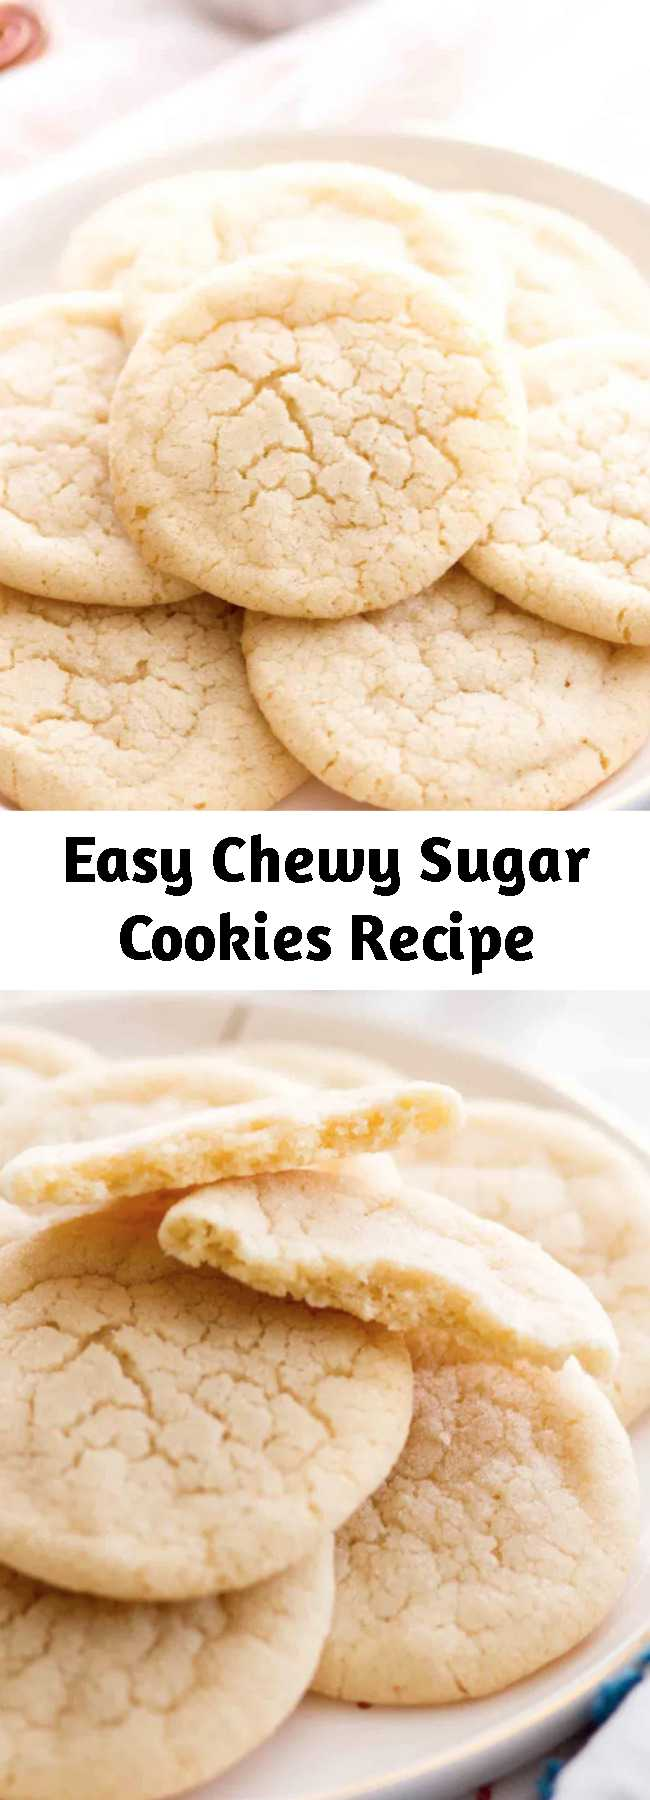 Easy Chewy Sugar Cookies Recipe - These soft and chewy sugar cookies are a Christmas cookie staple, because this is a no chill sugar cookie recipe! The centers are soft and the edges are chewy, making this one of my favorite sugar cookie recipes of all time!